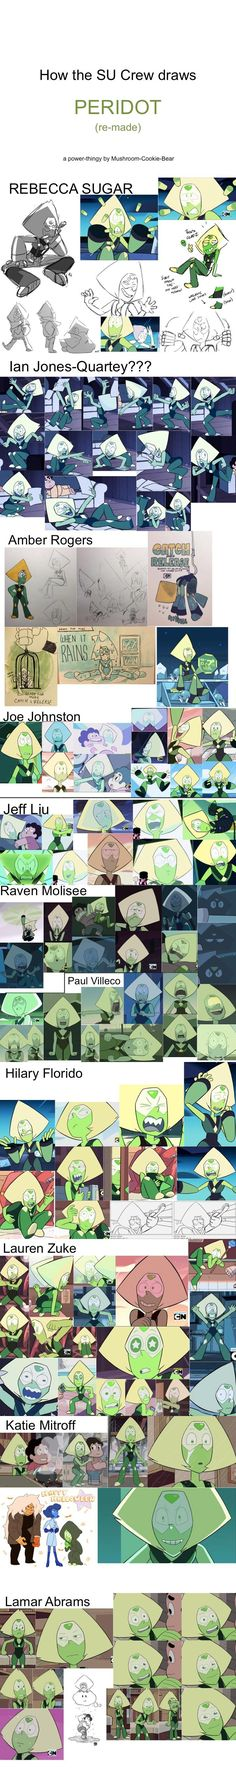 How the SU Crew draws Peridot ~ ! I absolutely looove the stylistic freedom this show encourages. UvU << favs are hilary florido and jeff liu Steven Universe Spoilers, Lapidot, Universe Art, Cartoon Network, Adventure Time, Fandoms, Fan Art, Lapis Lazuli, Peridots